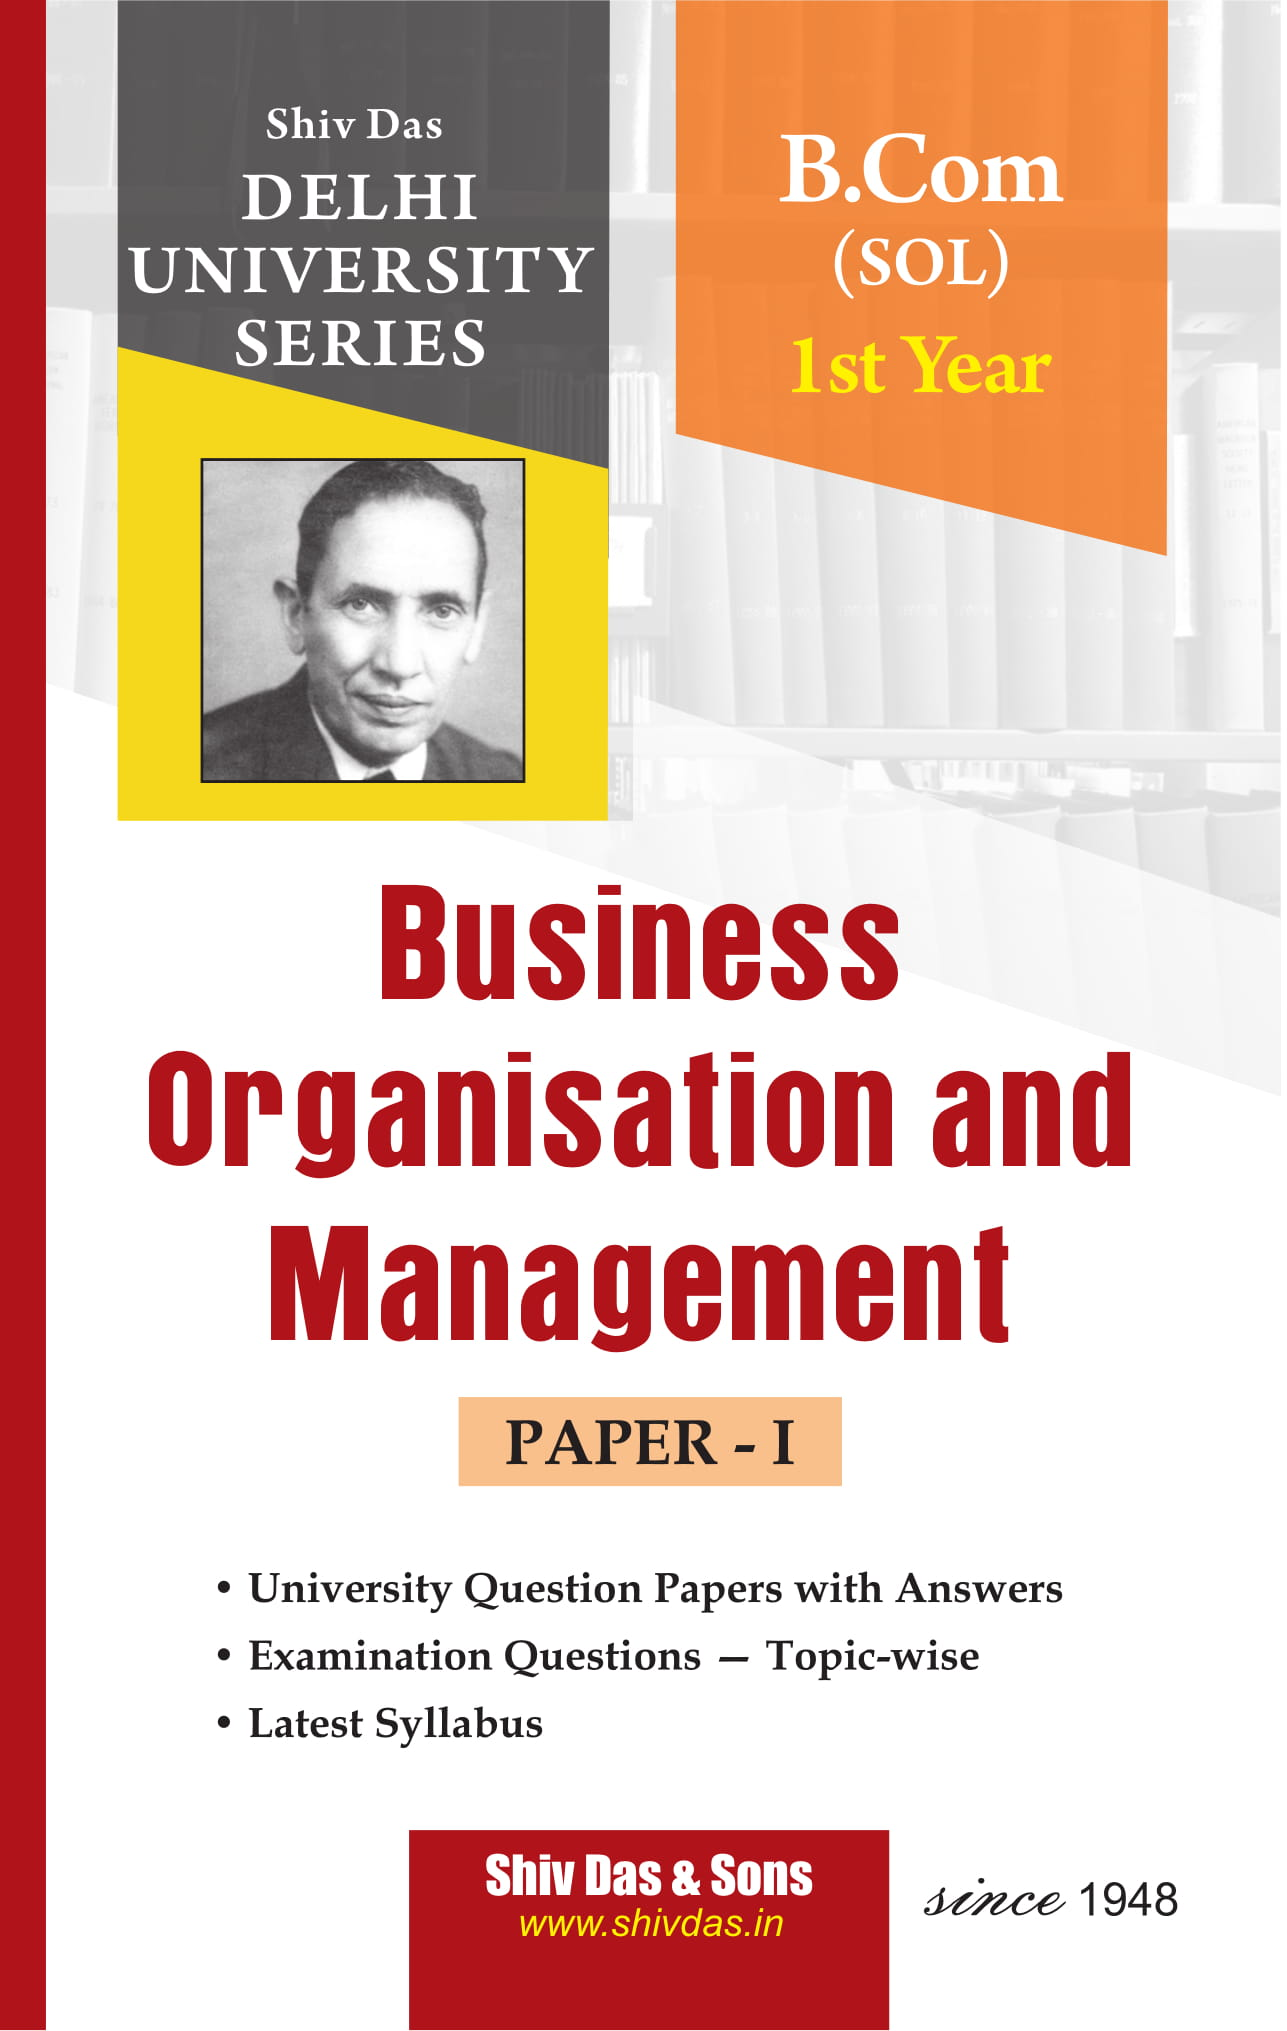 Business Organisation and Management (Eng. Medium) for B.Com 1st Year SOL/External